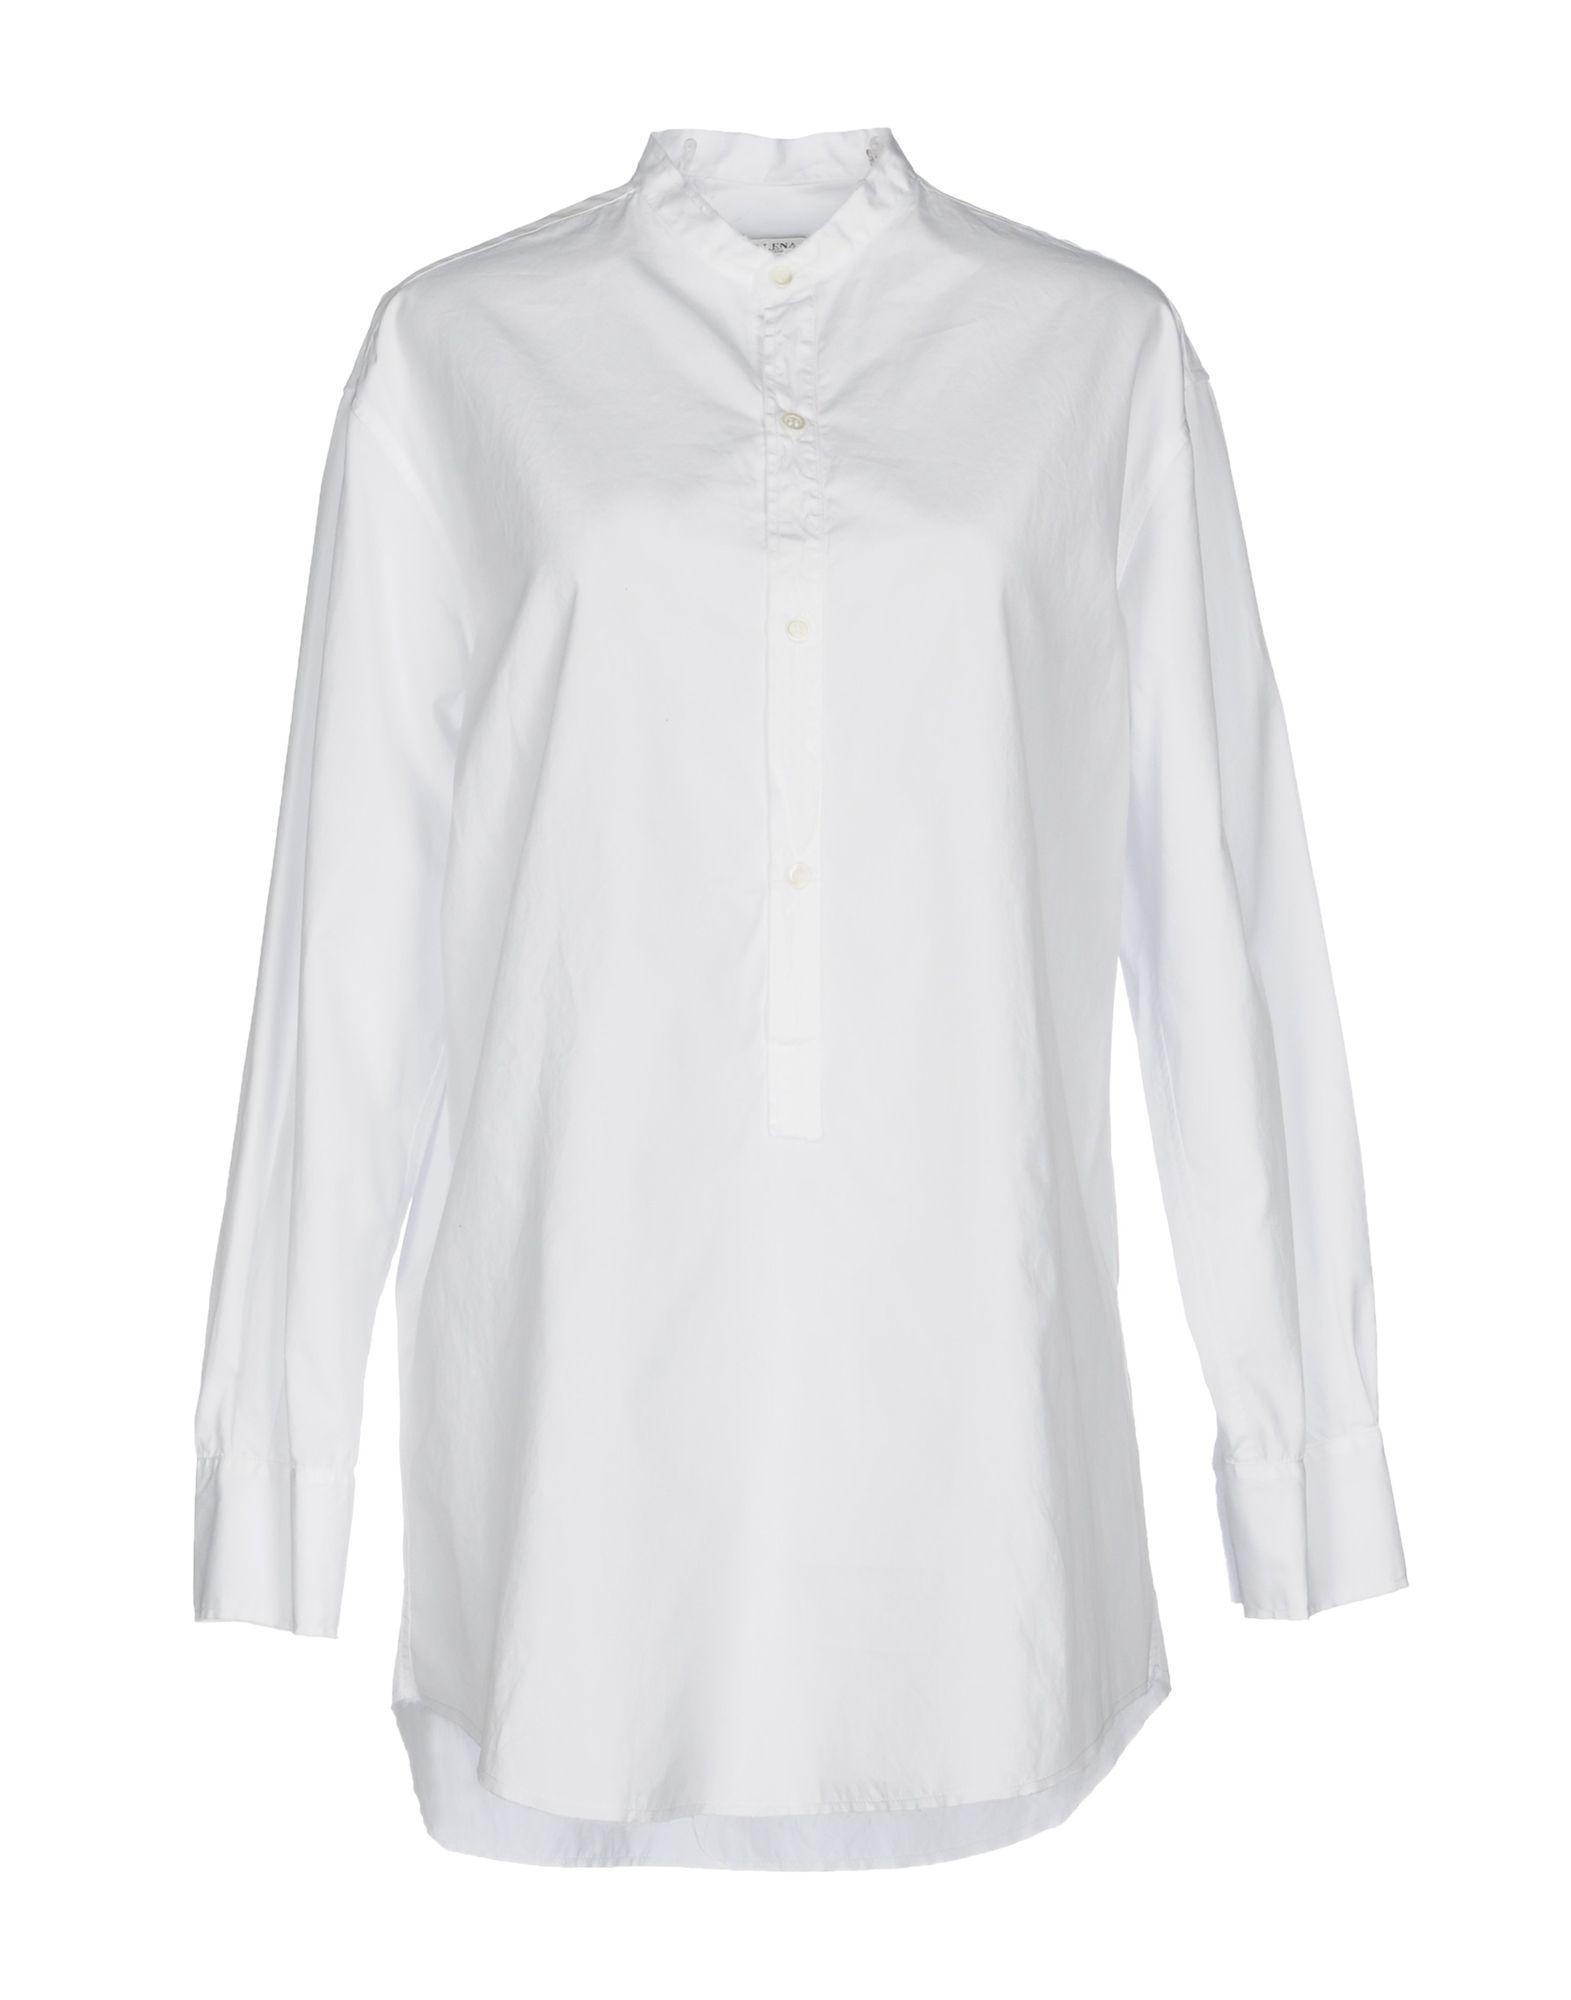 Barena Venezia Shirts In White